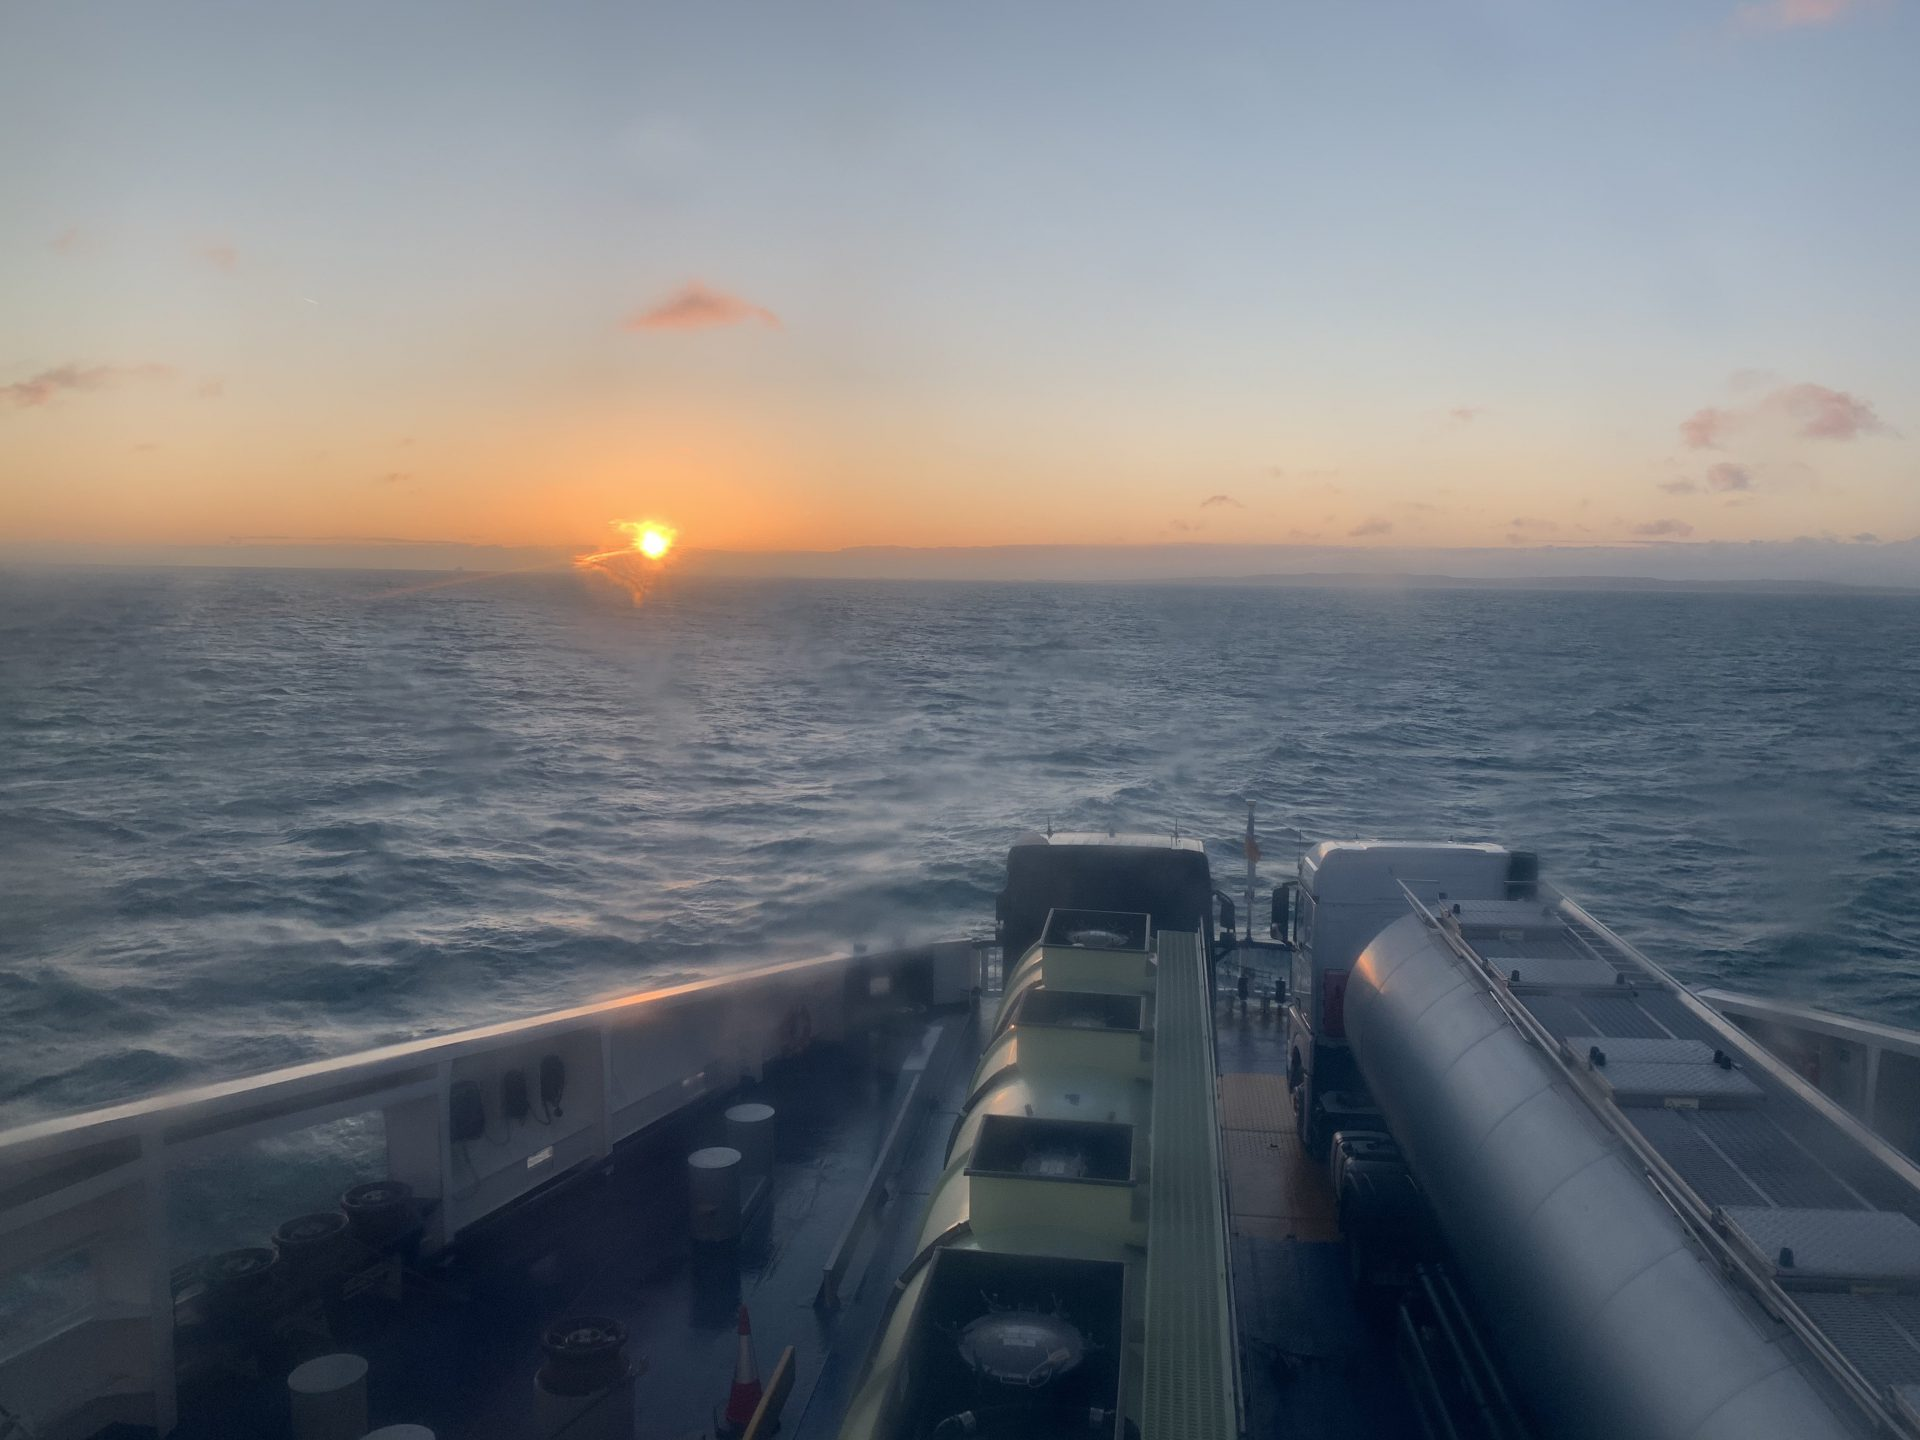 Sun set over sea on Ferry